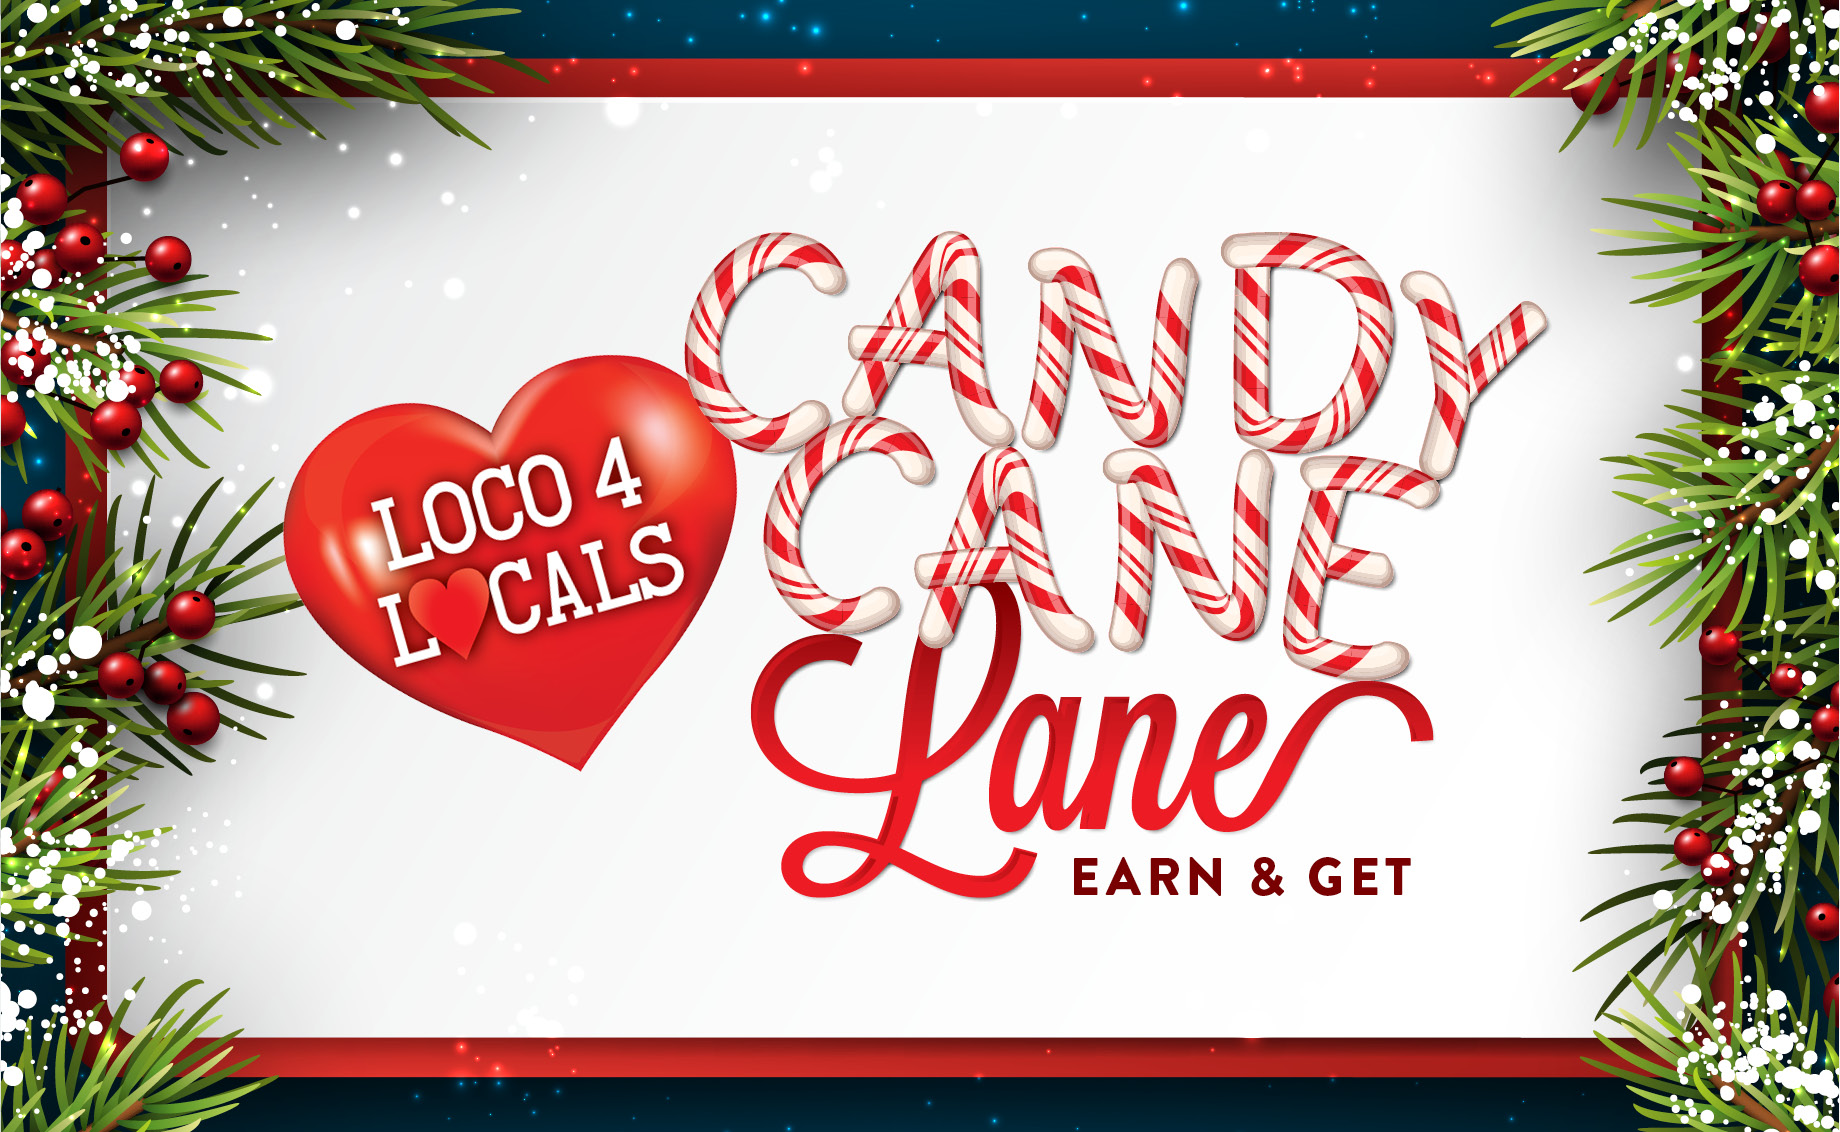 Candy Cane Lane Earn & Get